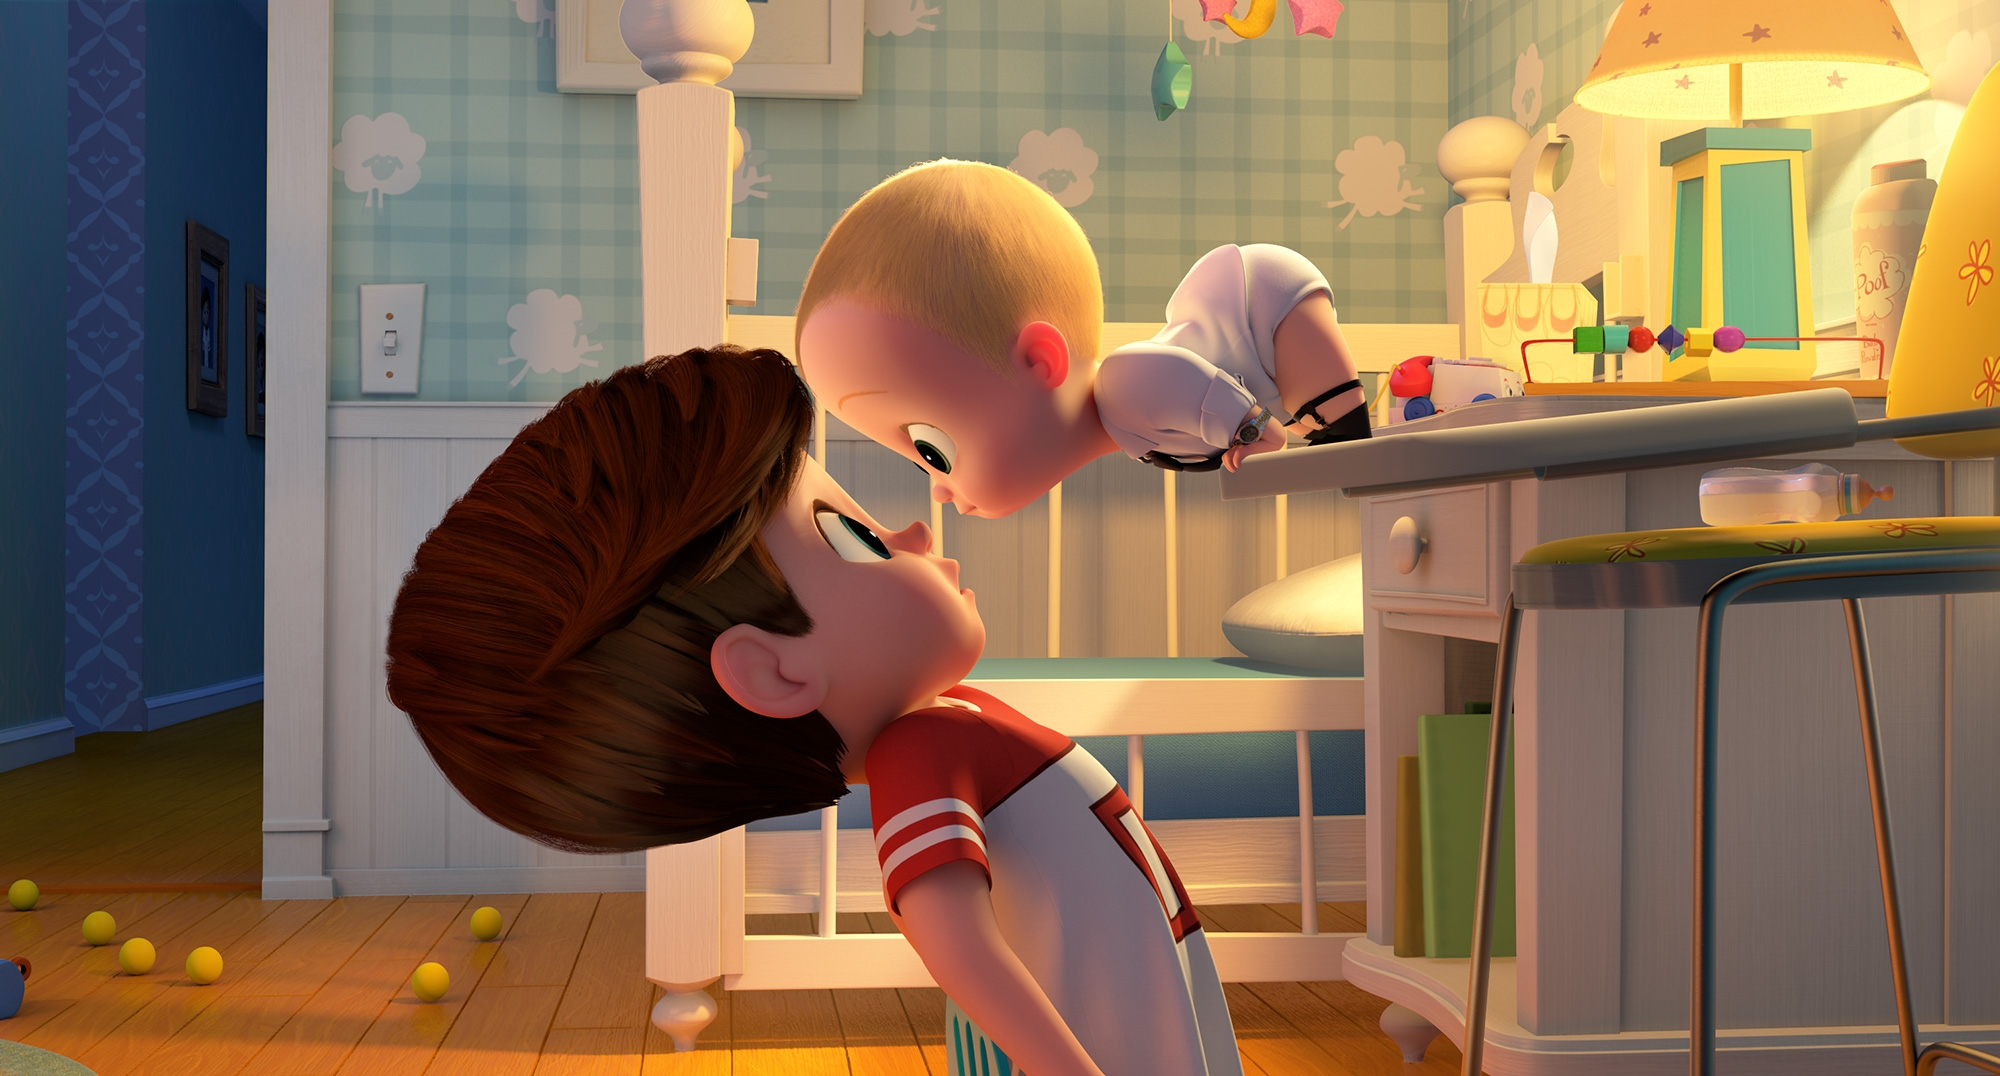 boss-baby review